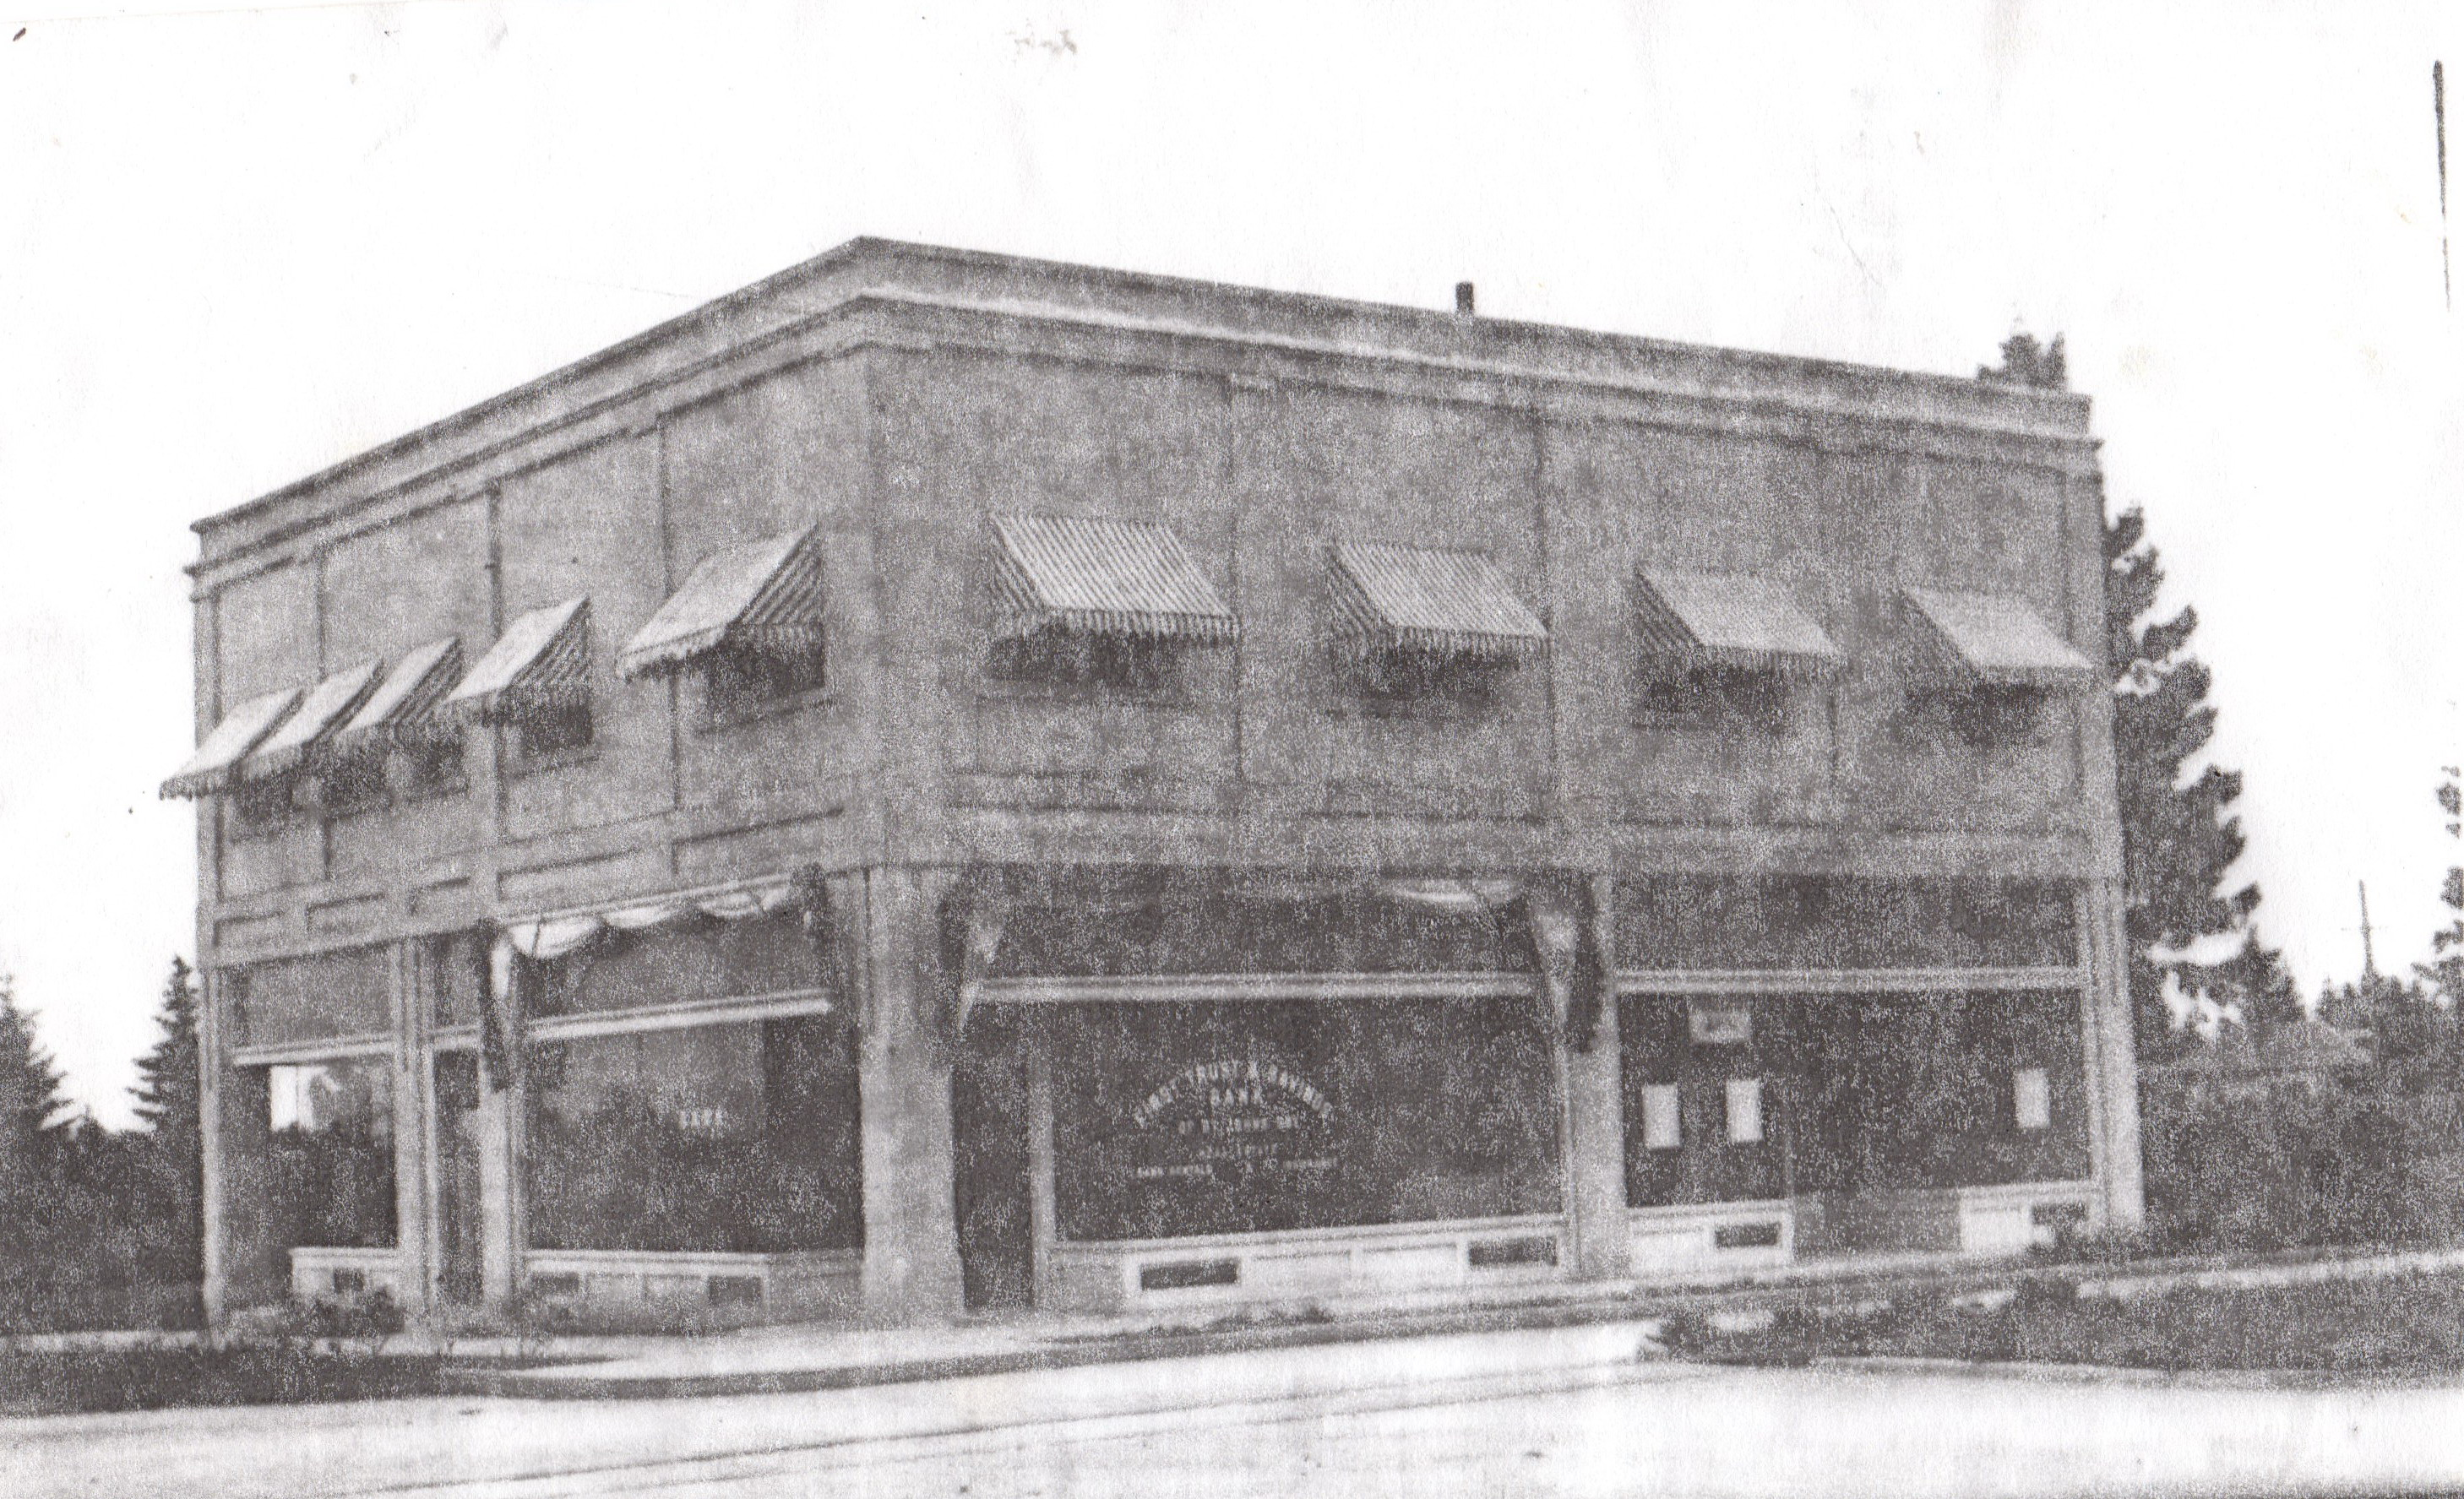 First Trust and Savings Bank NE corner of Fessenden and Midway 1920